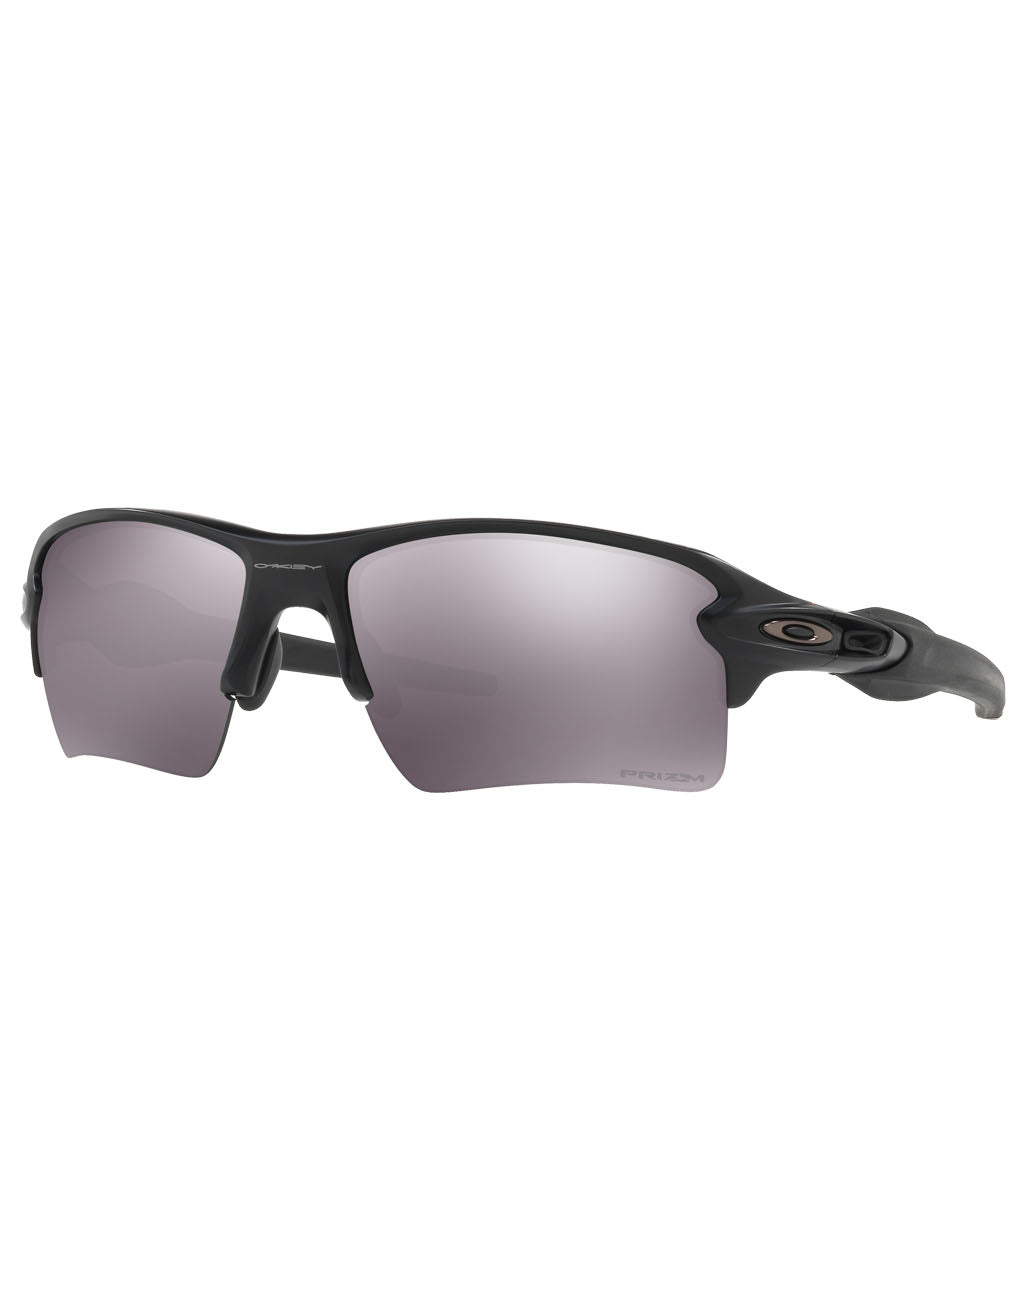 Oakley Flak 2.0 XL Prizm Matte Black Sunglasses (Men's)Matte Black_master_image